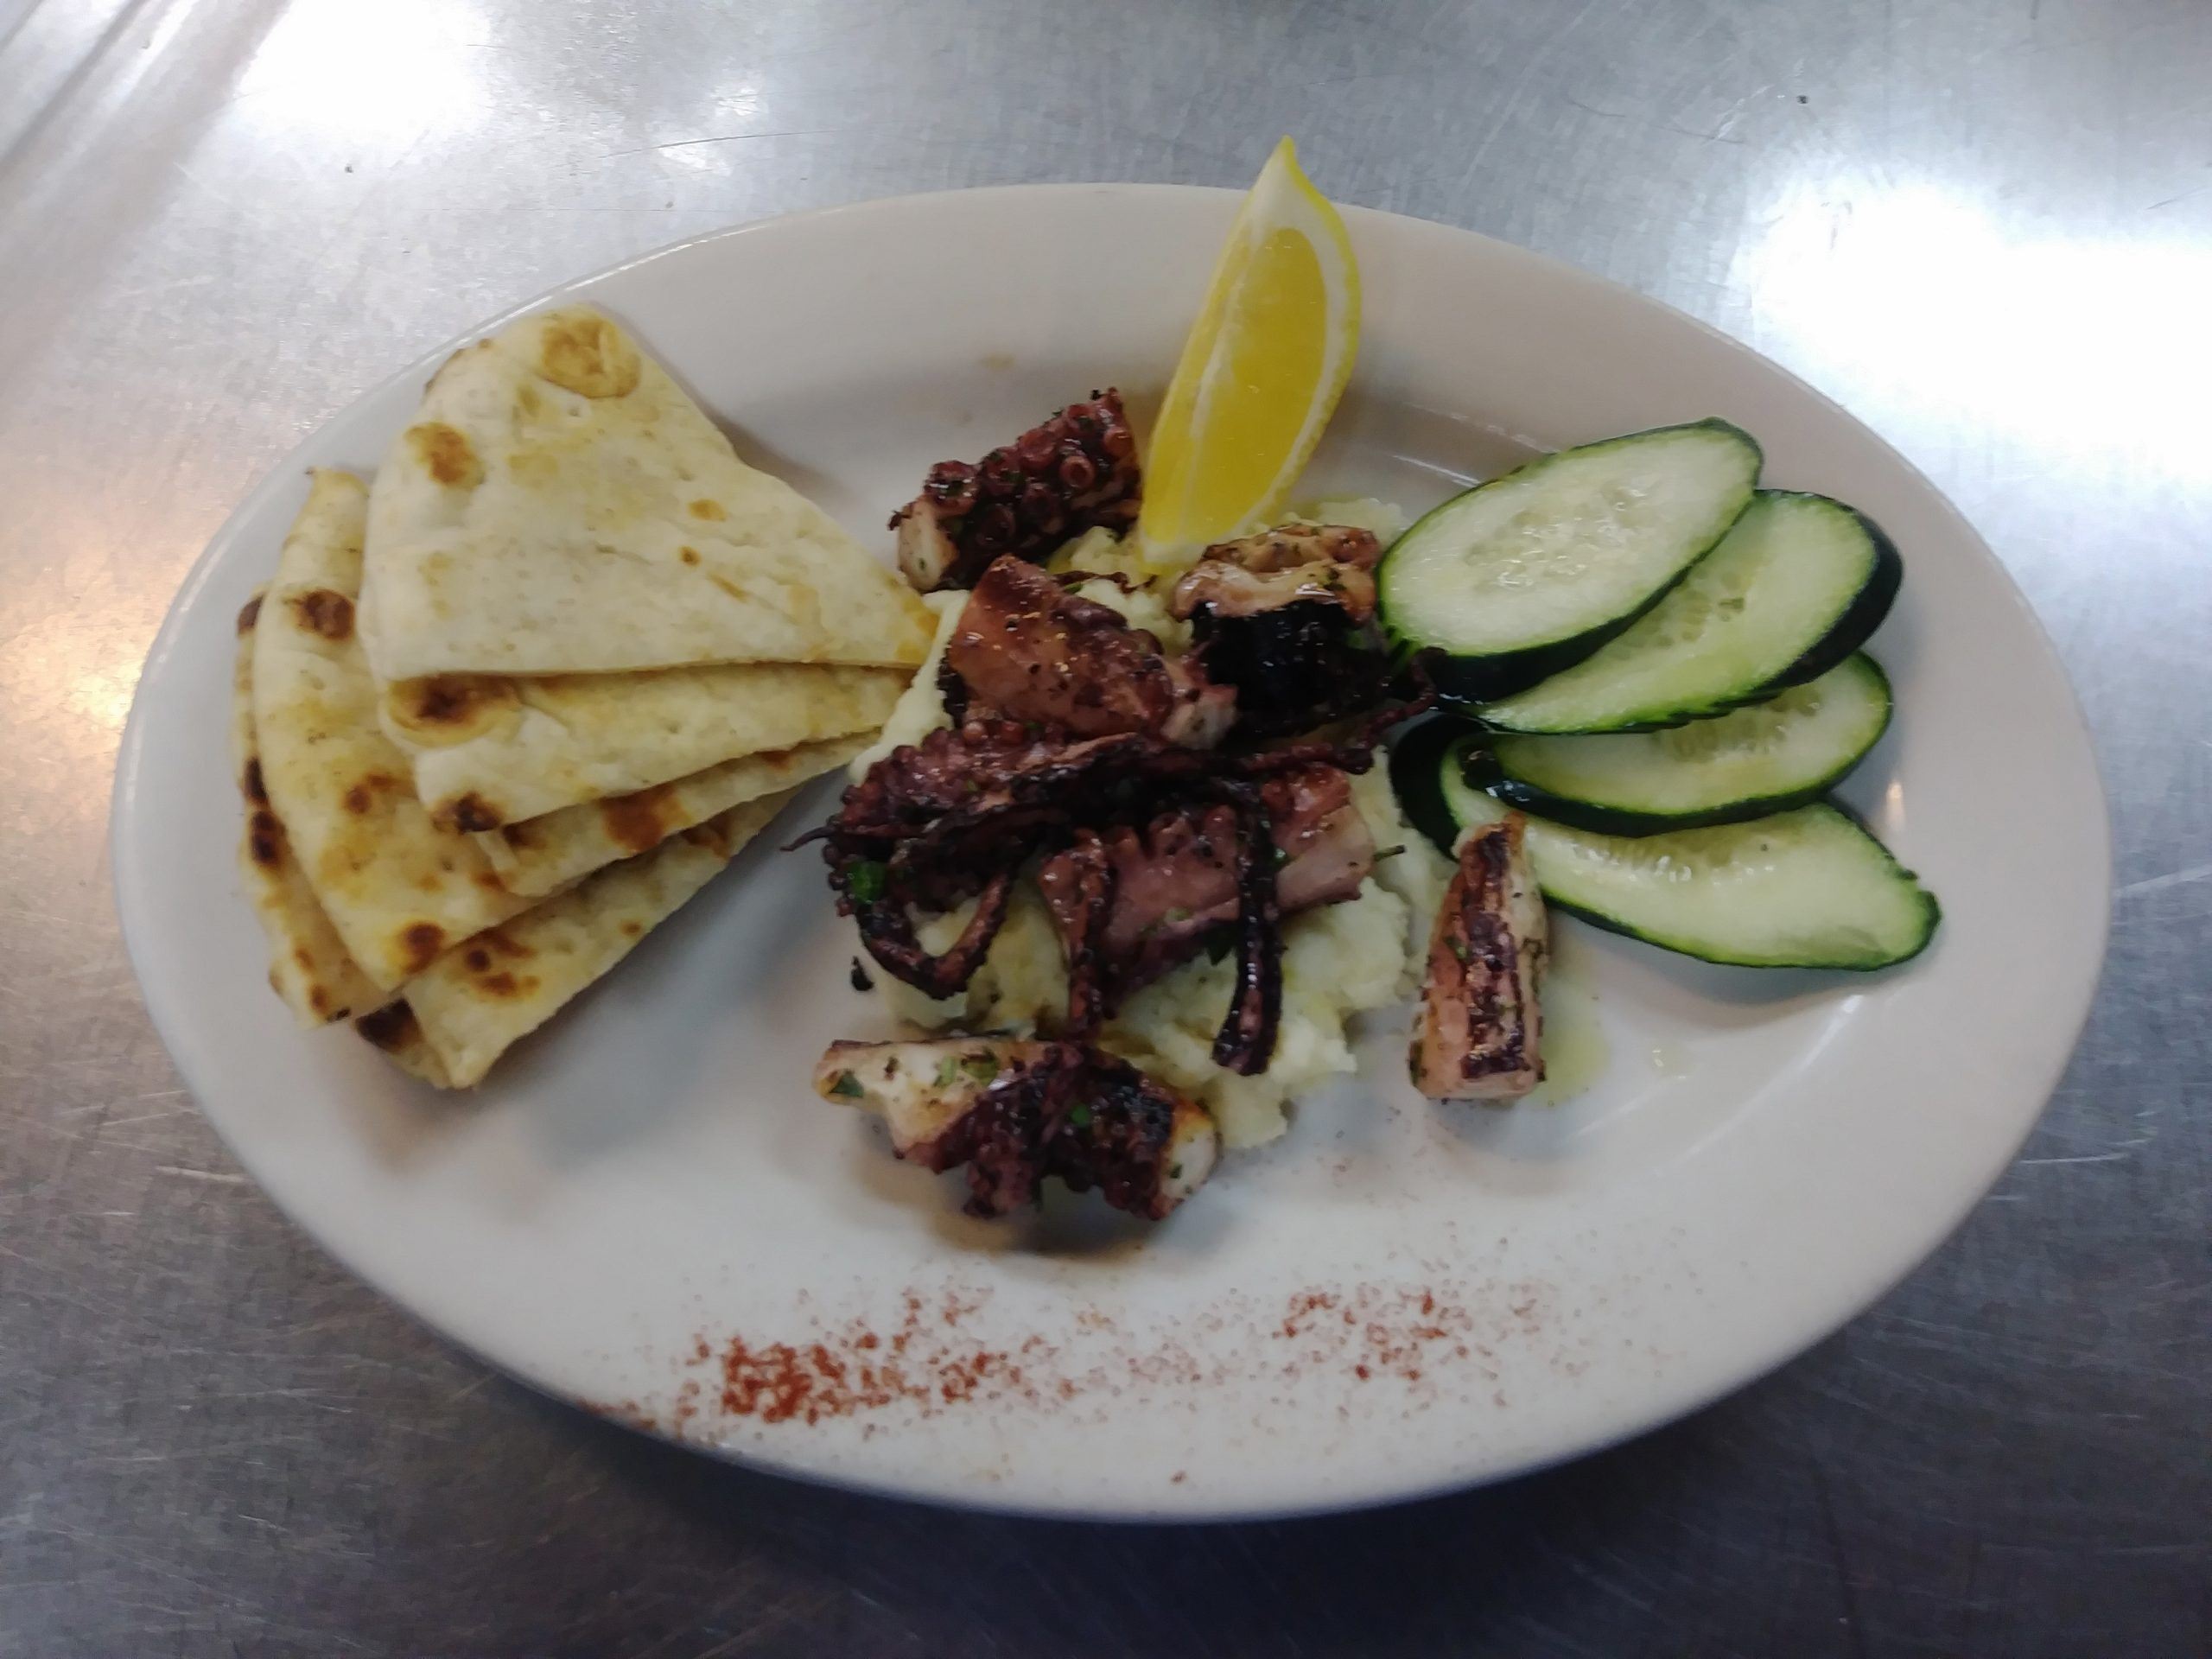 Appetizer: Jake and Telly's Grilled octopus on a white plate. Octopus marinated in our secret blend of herbs and spices, then char-grilled to perfection. Served with a classic Greek Skordalia (garlic and potato dipping sauce), cucumber, lemon and warm pita.